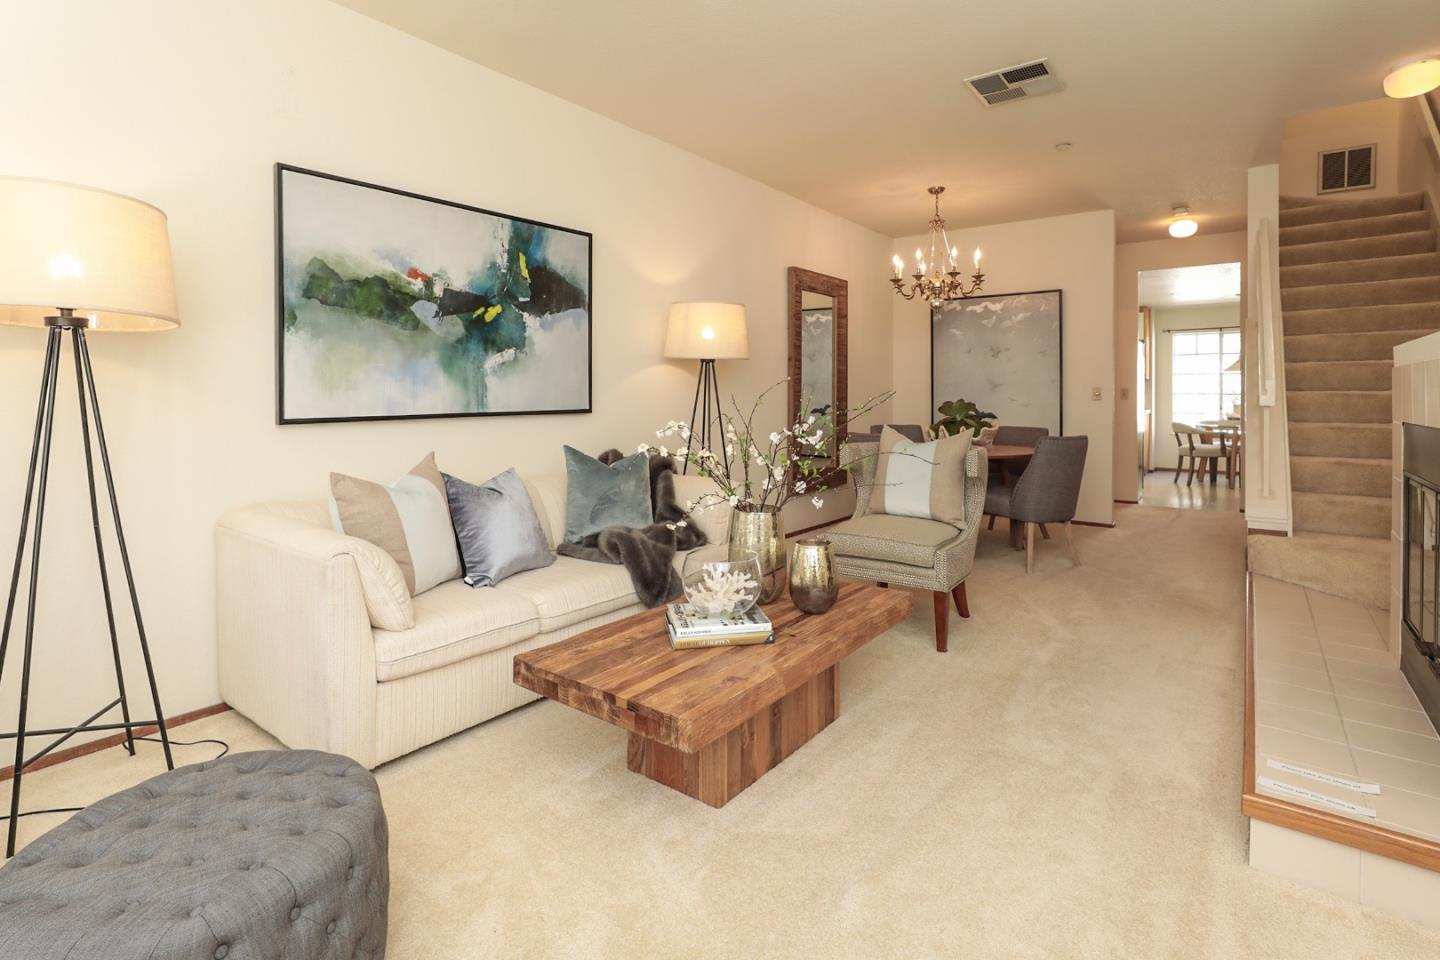 Townhouse for Sale at 975 Belmont Terrace 975 Belmont Terrace Sunnyvale, California 94086 United States